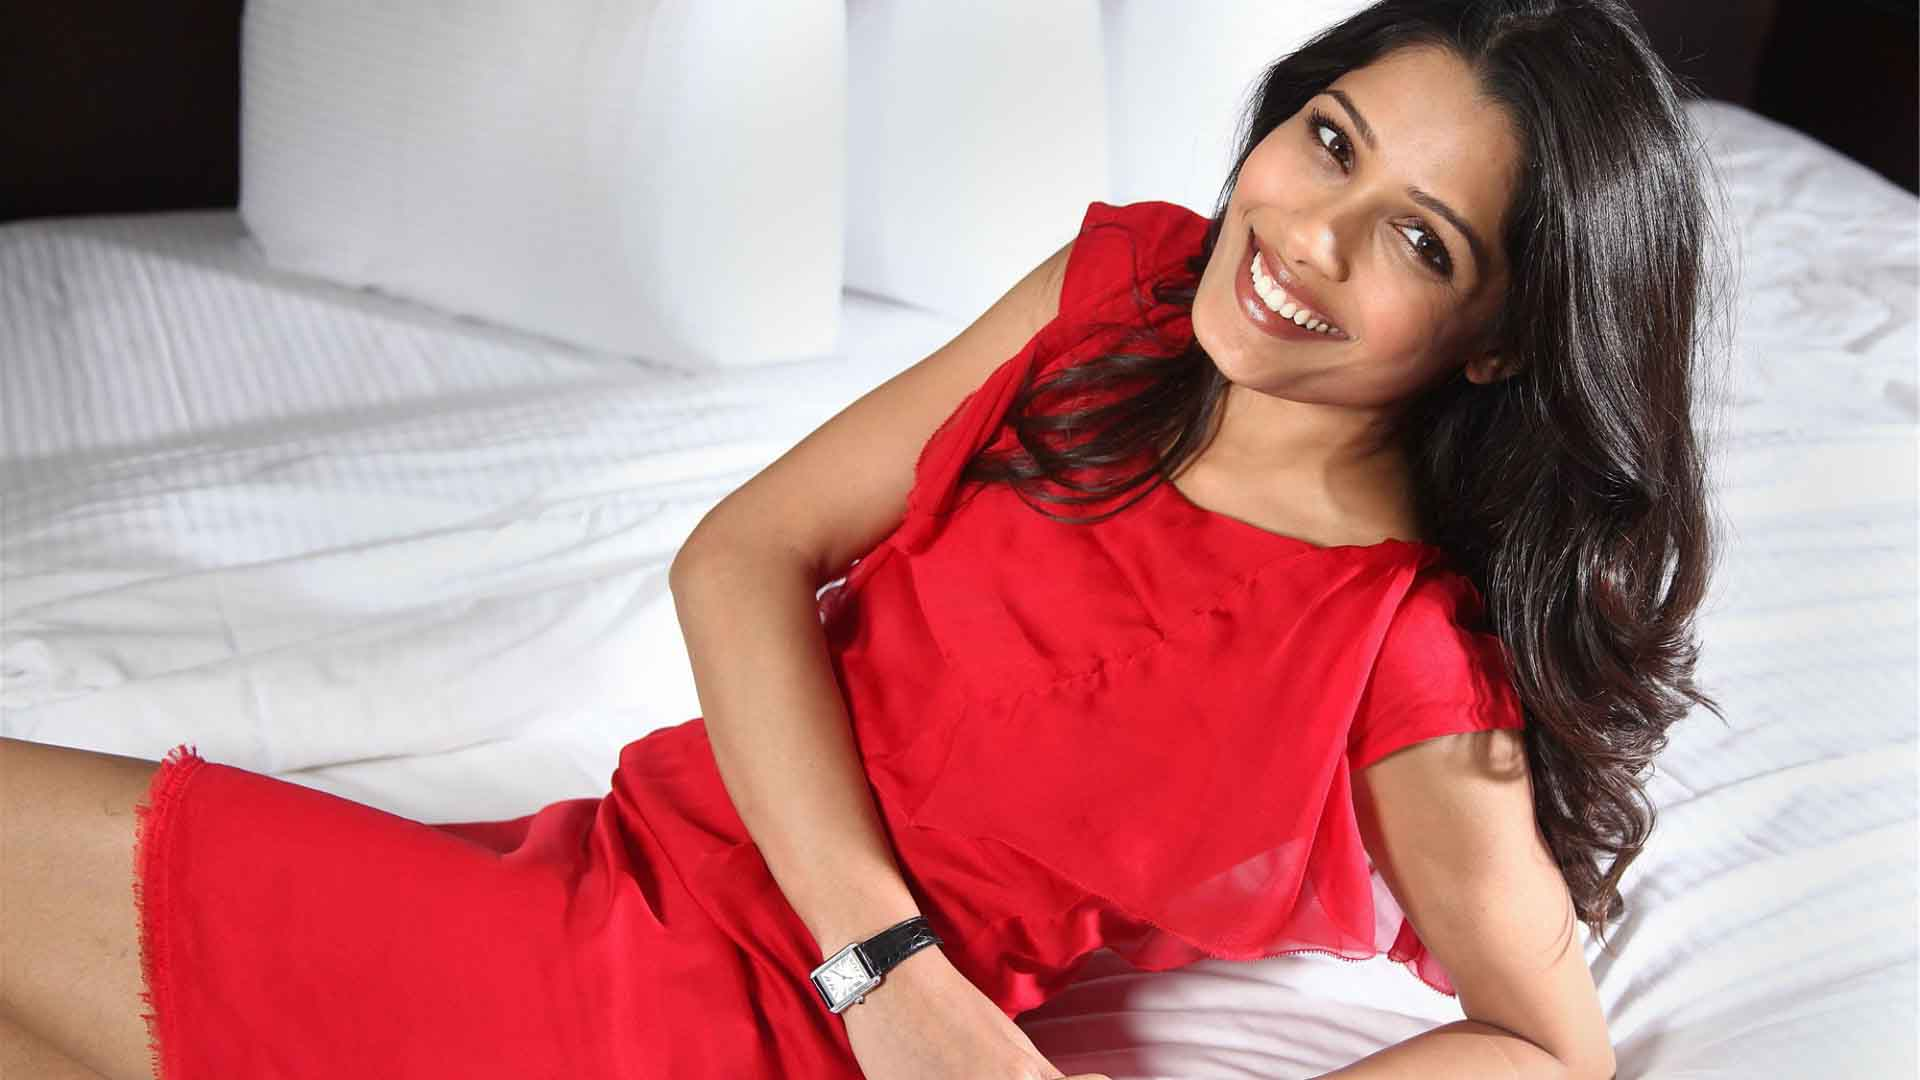 Freida pinto red dress pictures